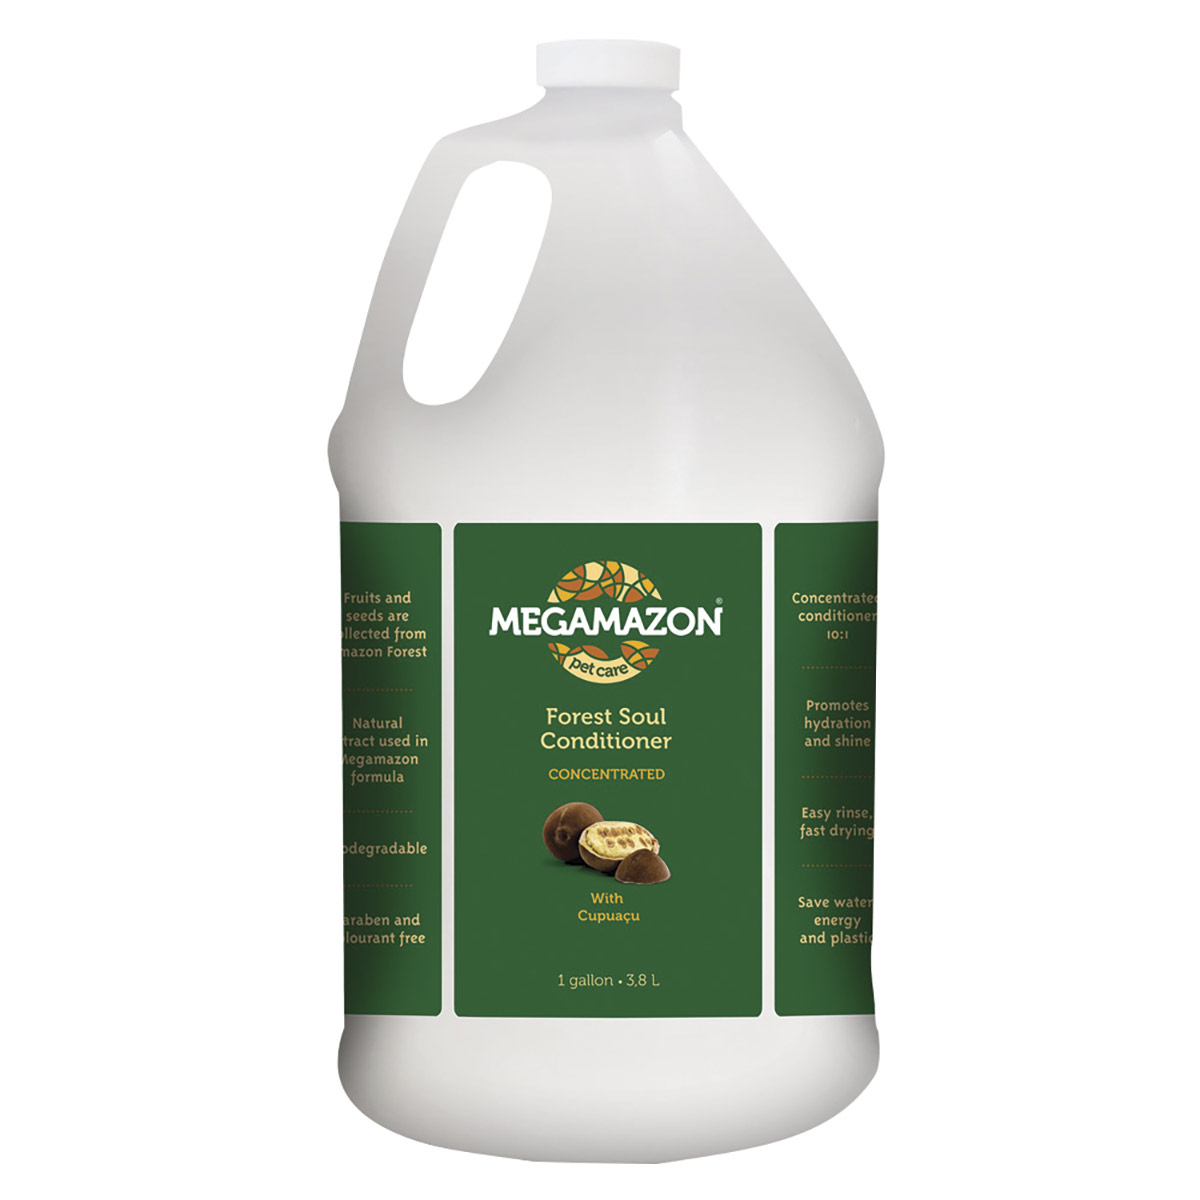 Buy Megamazon Forest Soul Conditioner Gallon 10:1